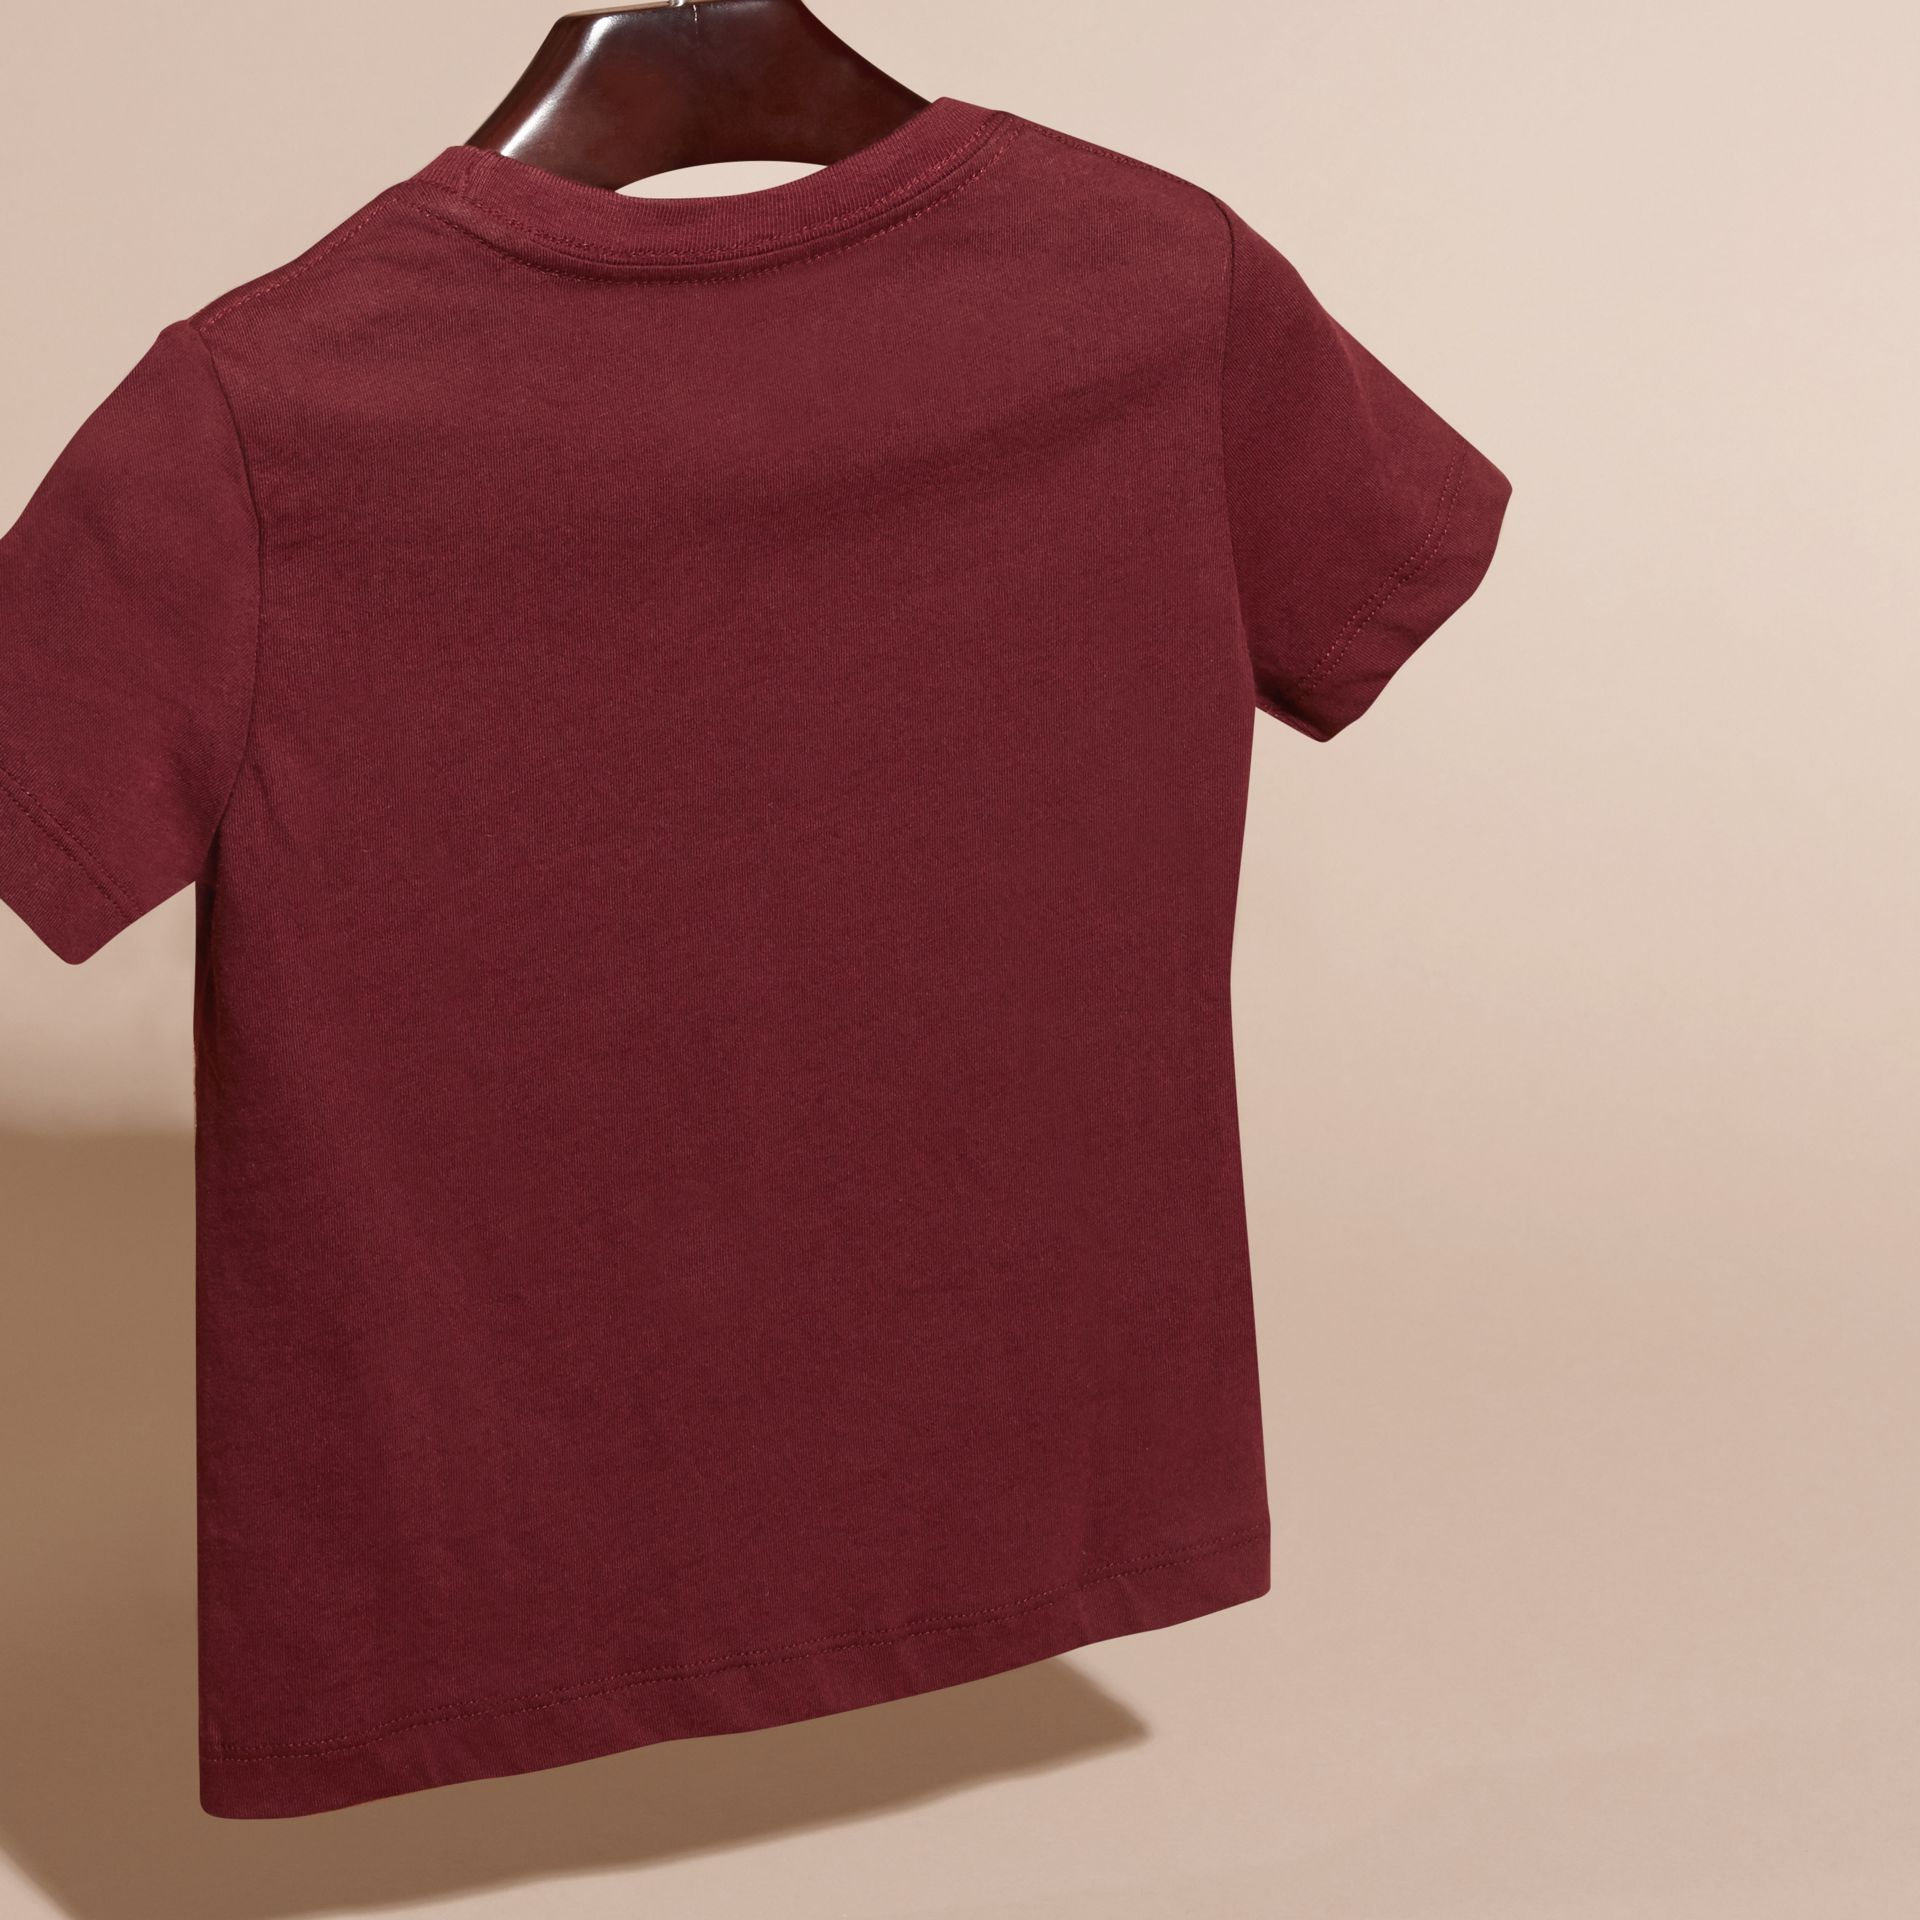 Burgundy red Check Pocket T-Shirt Burgundy Red - gallery image 4